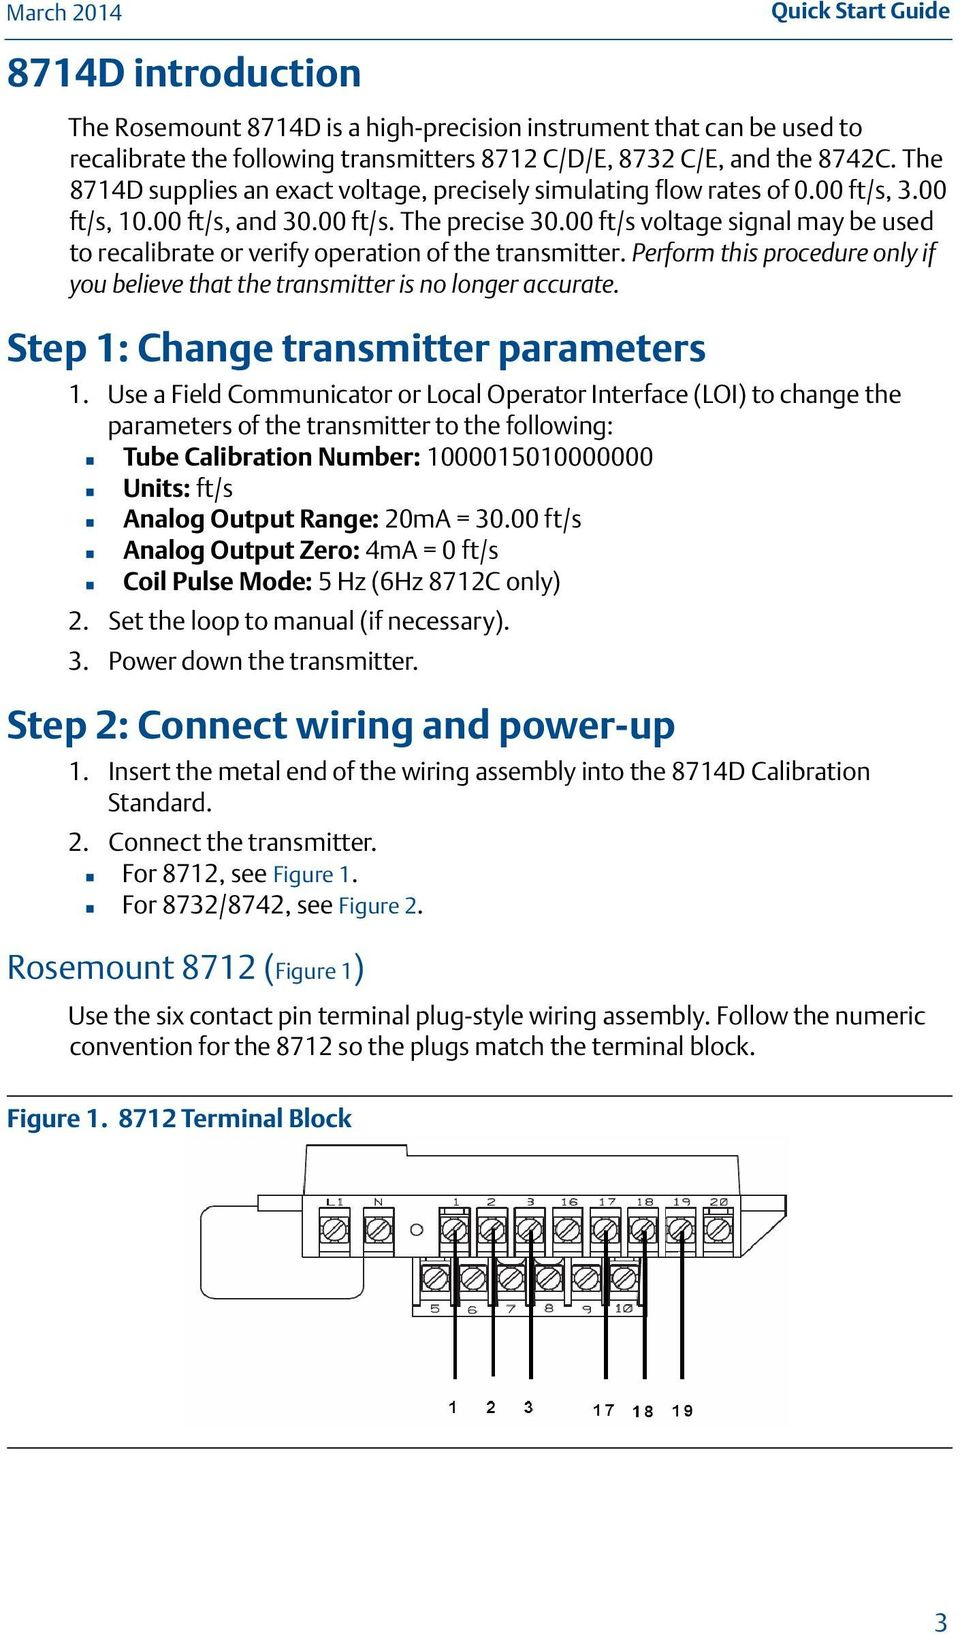 Rosemount 8732 Wiring Diagram - Wiring Diagram And Schematics